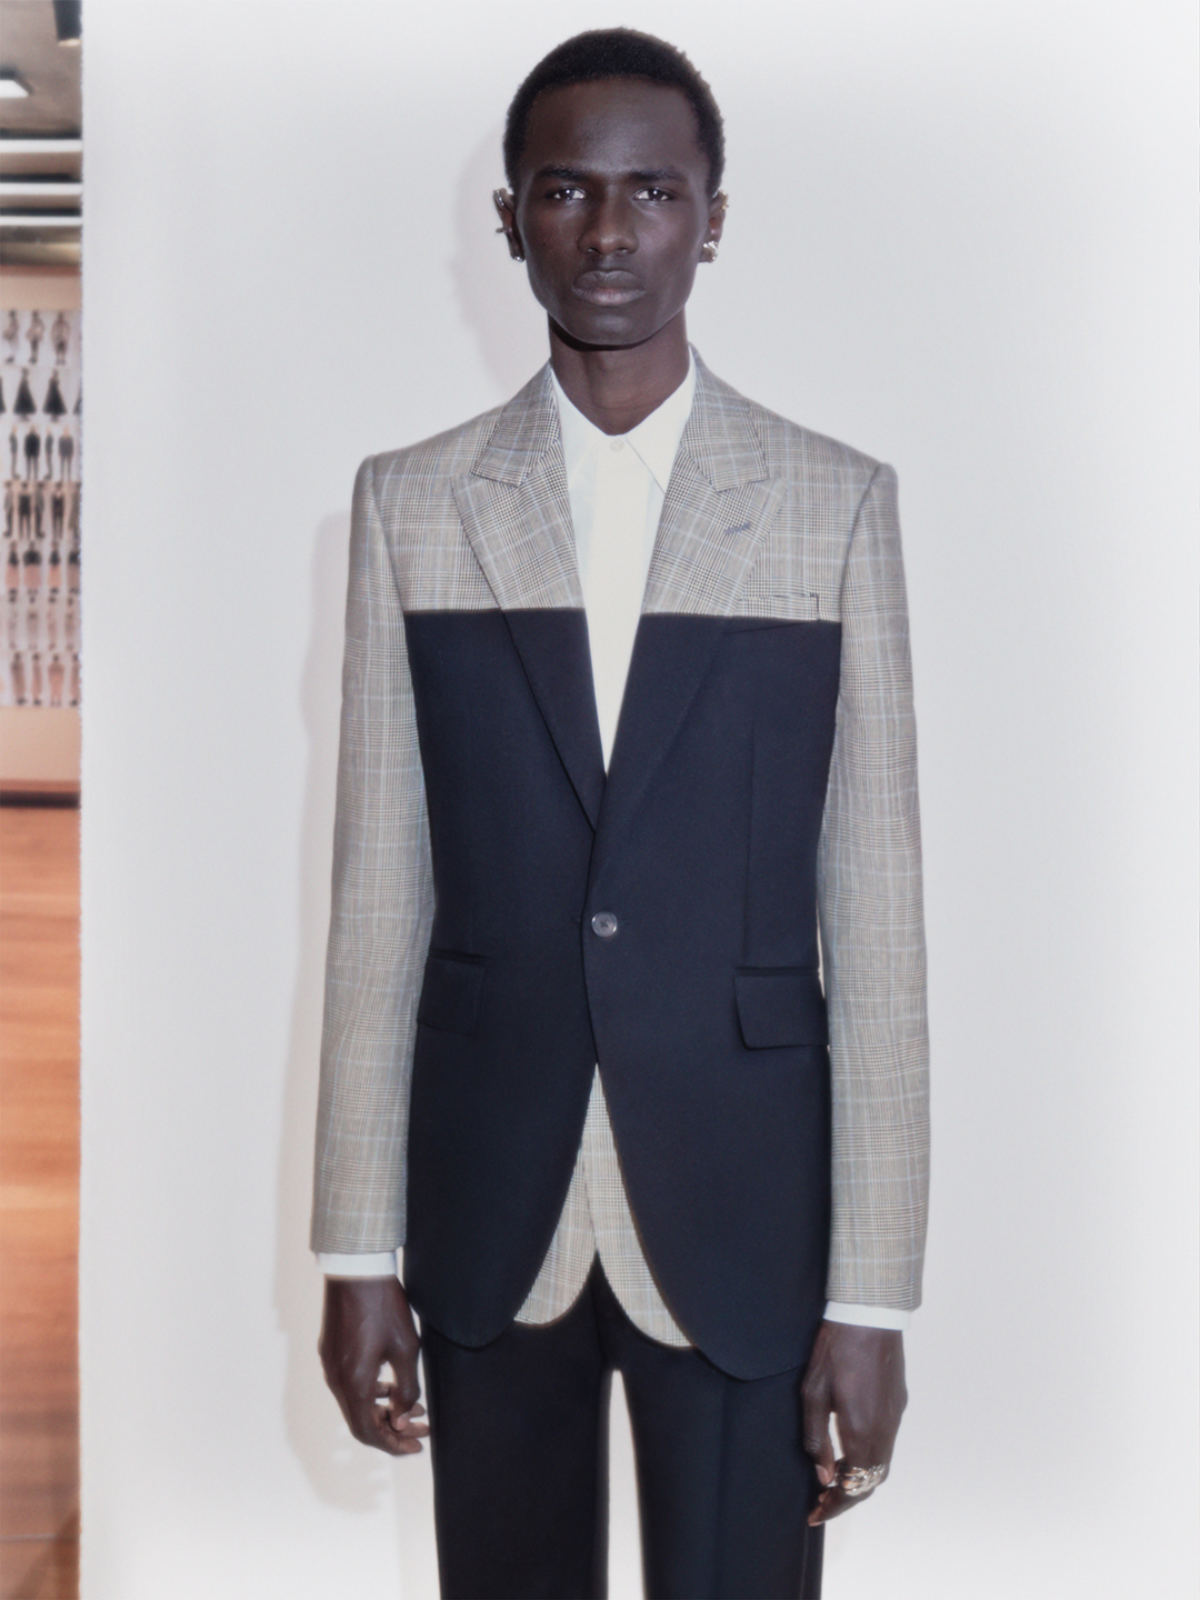 Alexander McQueen's New Season Tailoring Is Stripped To The Bone